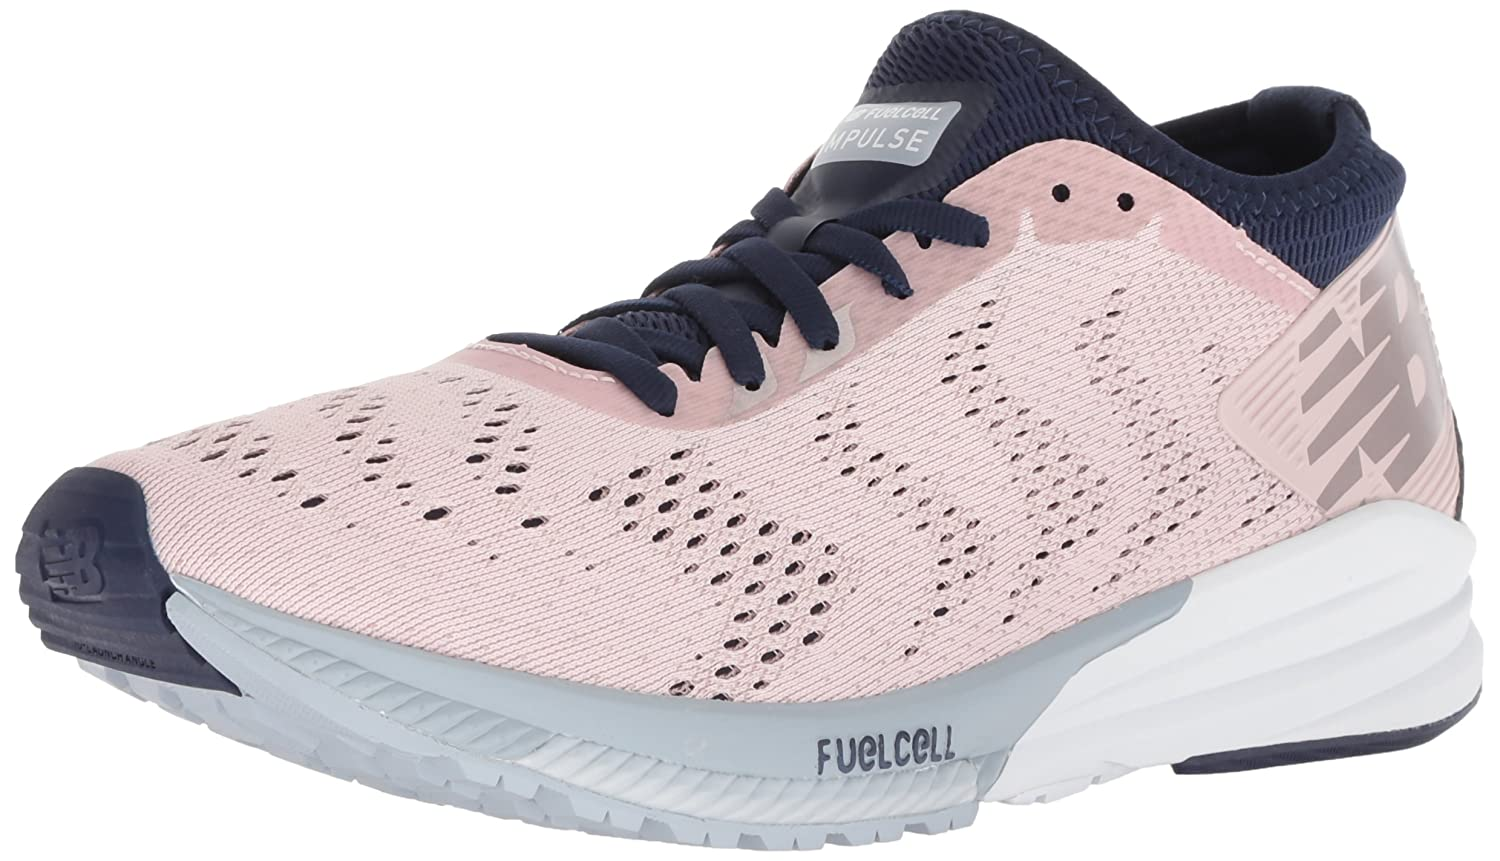 New Balance Women's Impulse V1 FuelCell Running Shoe B075R6VGYM 5 B(M) US|Light Pink